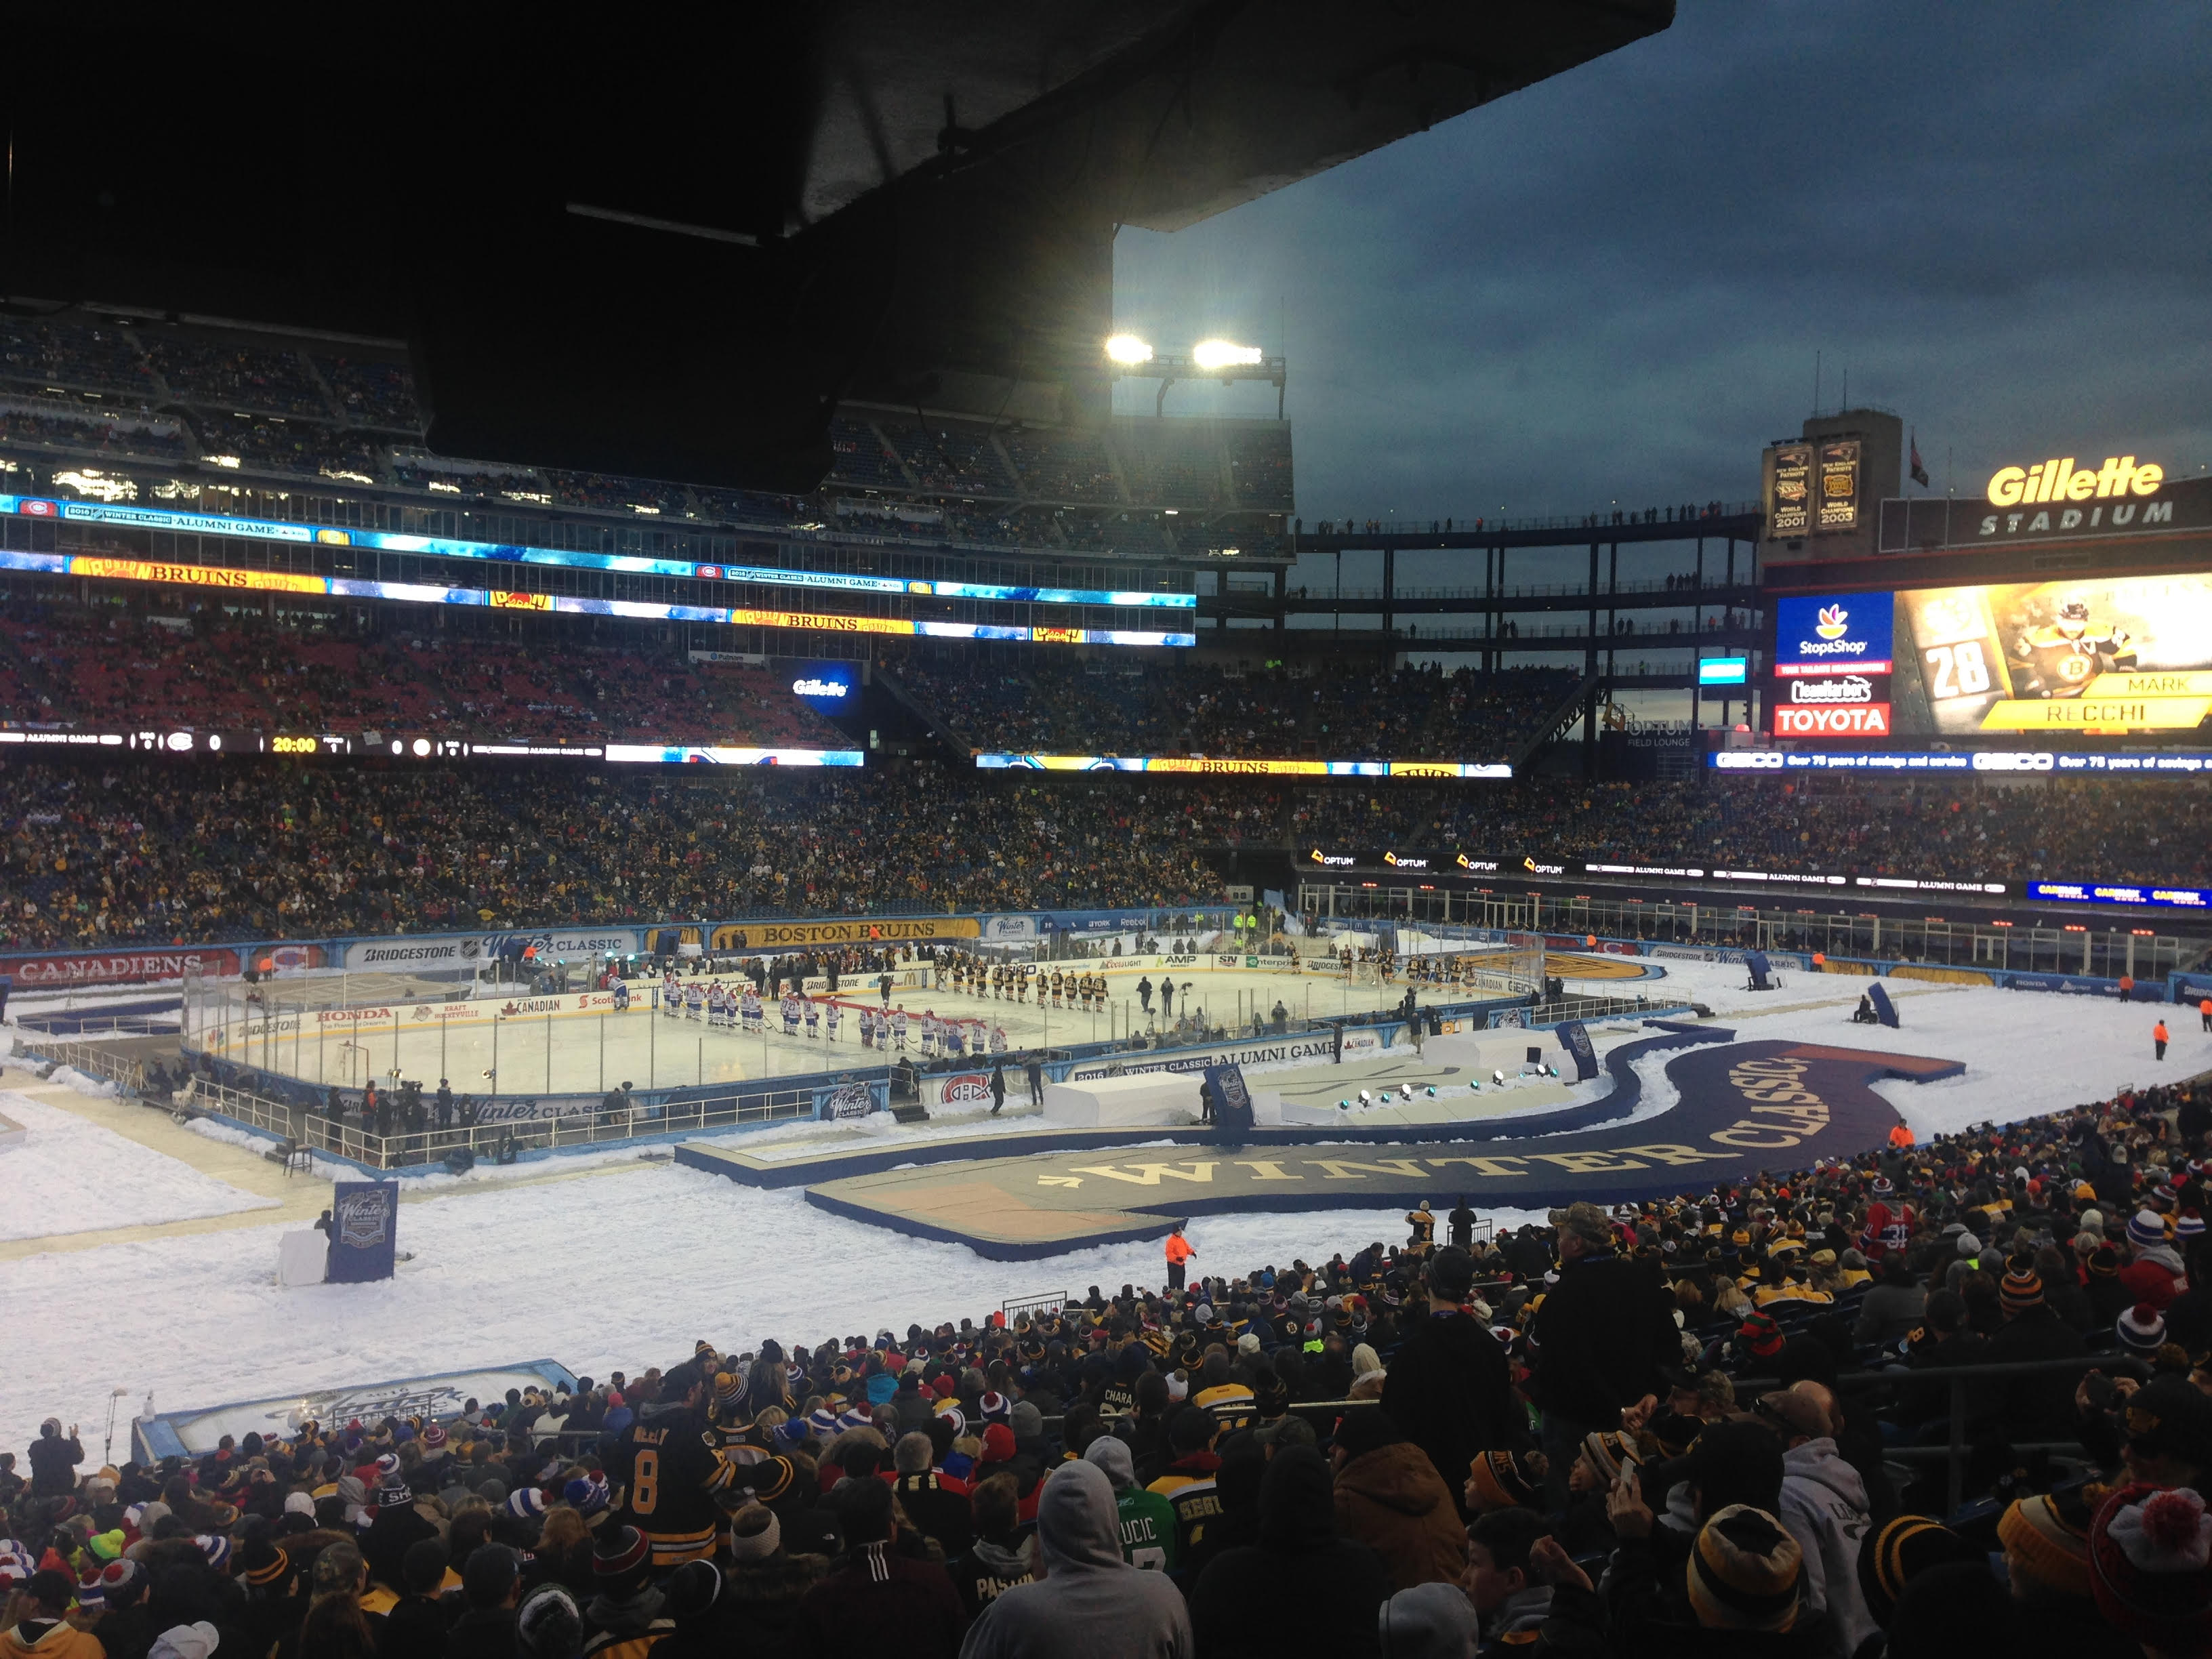 Neaa brings neighborhood fans to winter classic alumni game